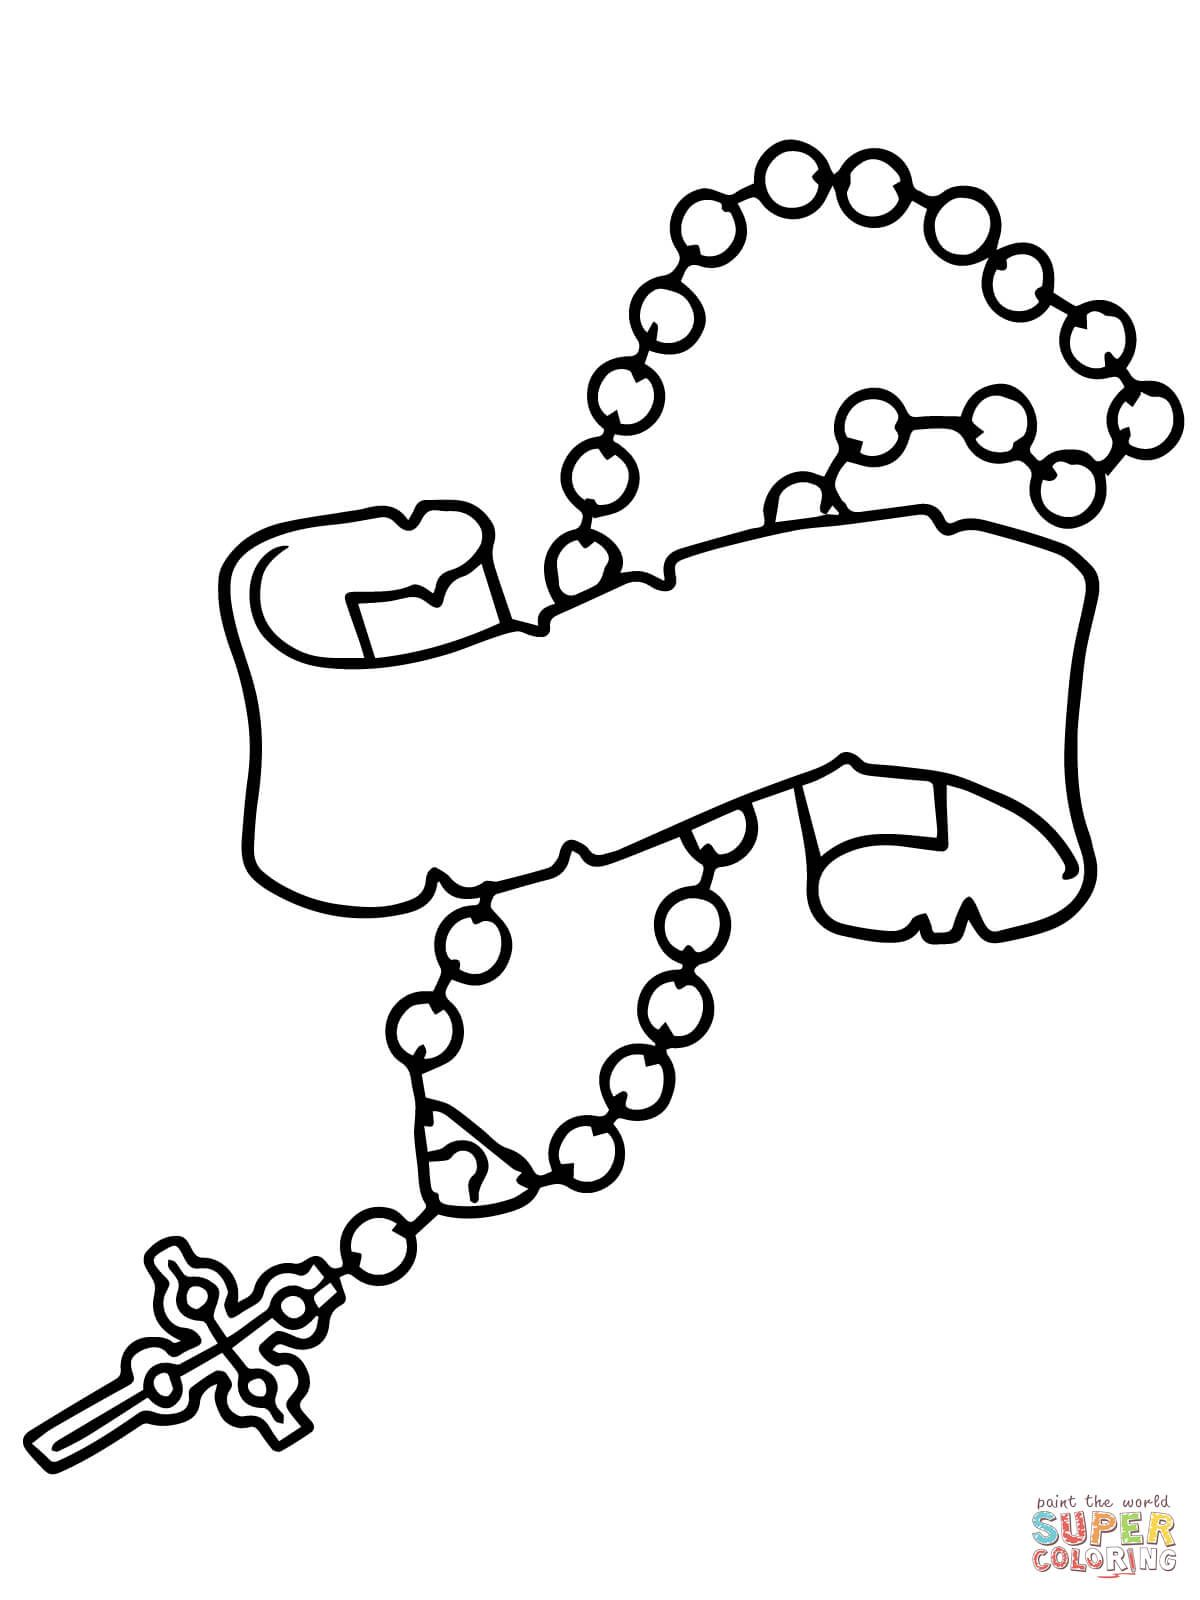 Rosary Beads Coloring Page Free Printable Coloring Pages Mao